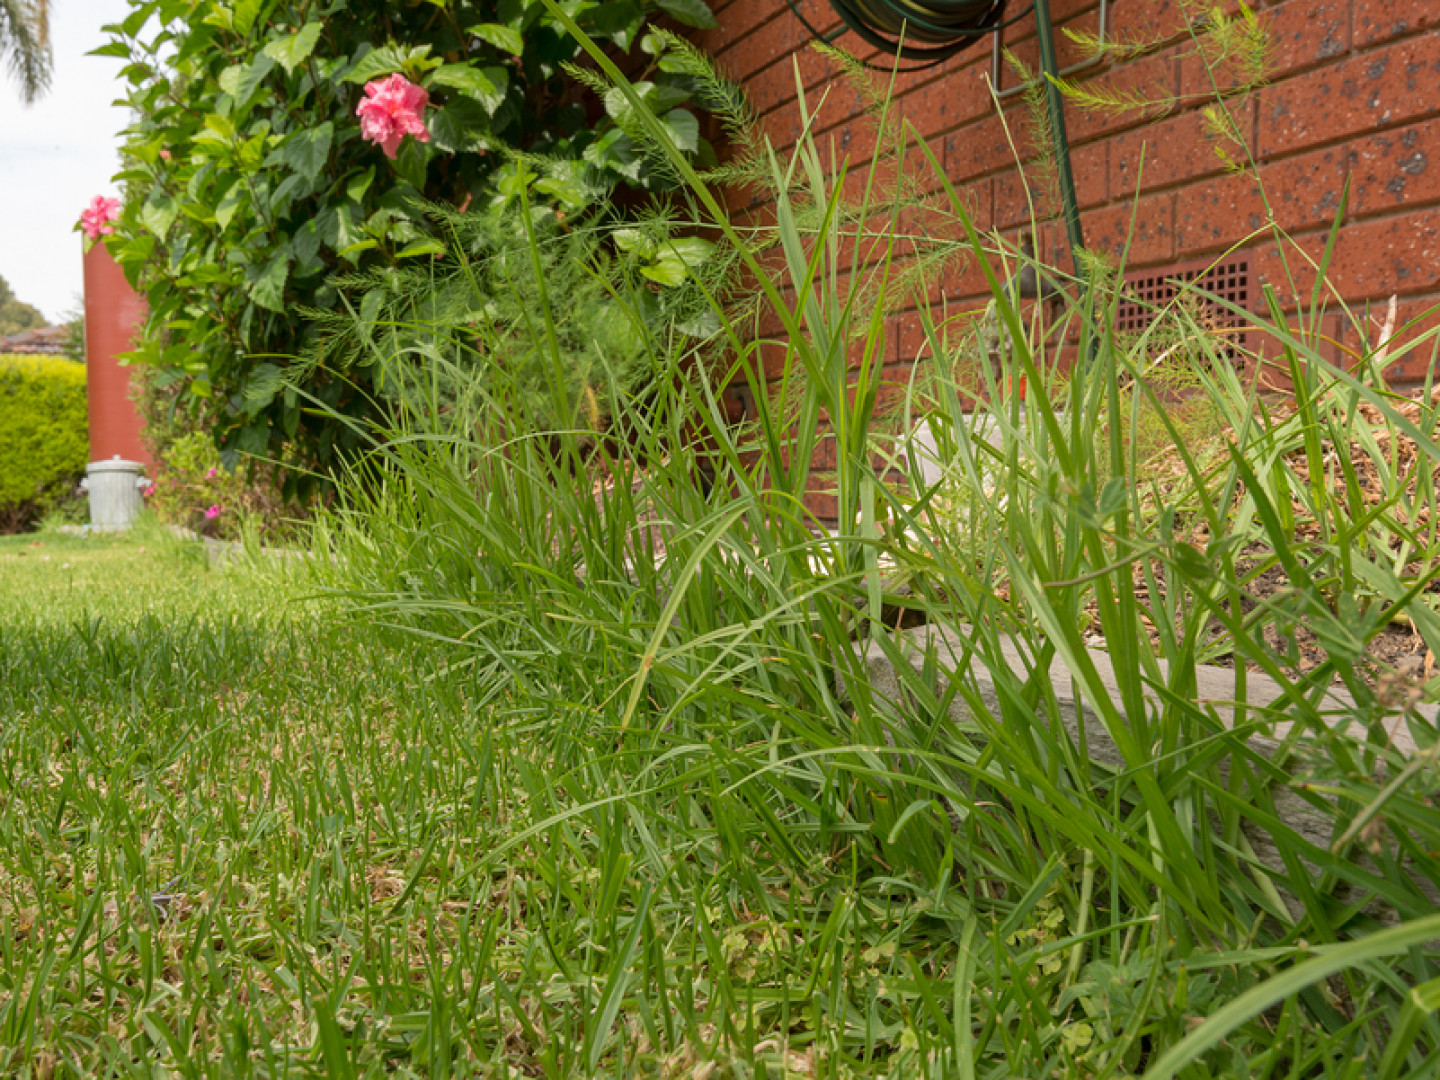 Prevent Weeds From Choking Out Your Grass With Weed Control Services